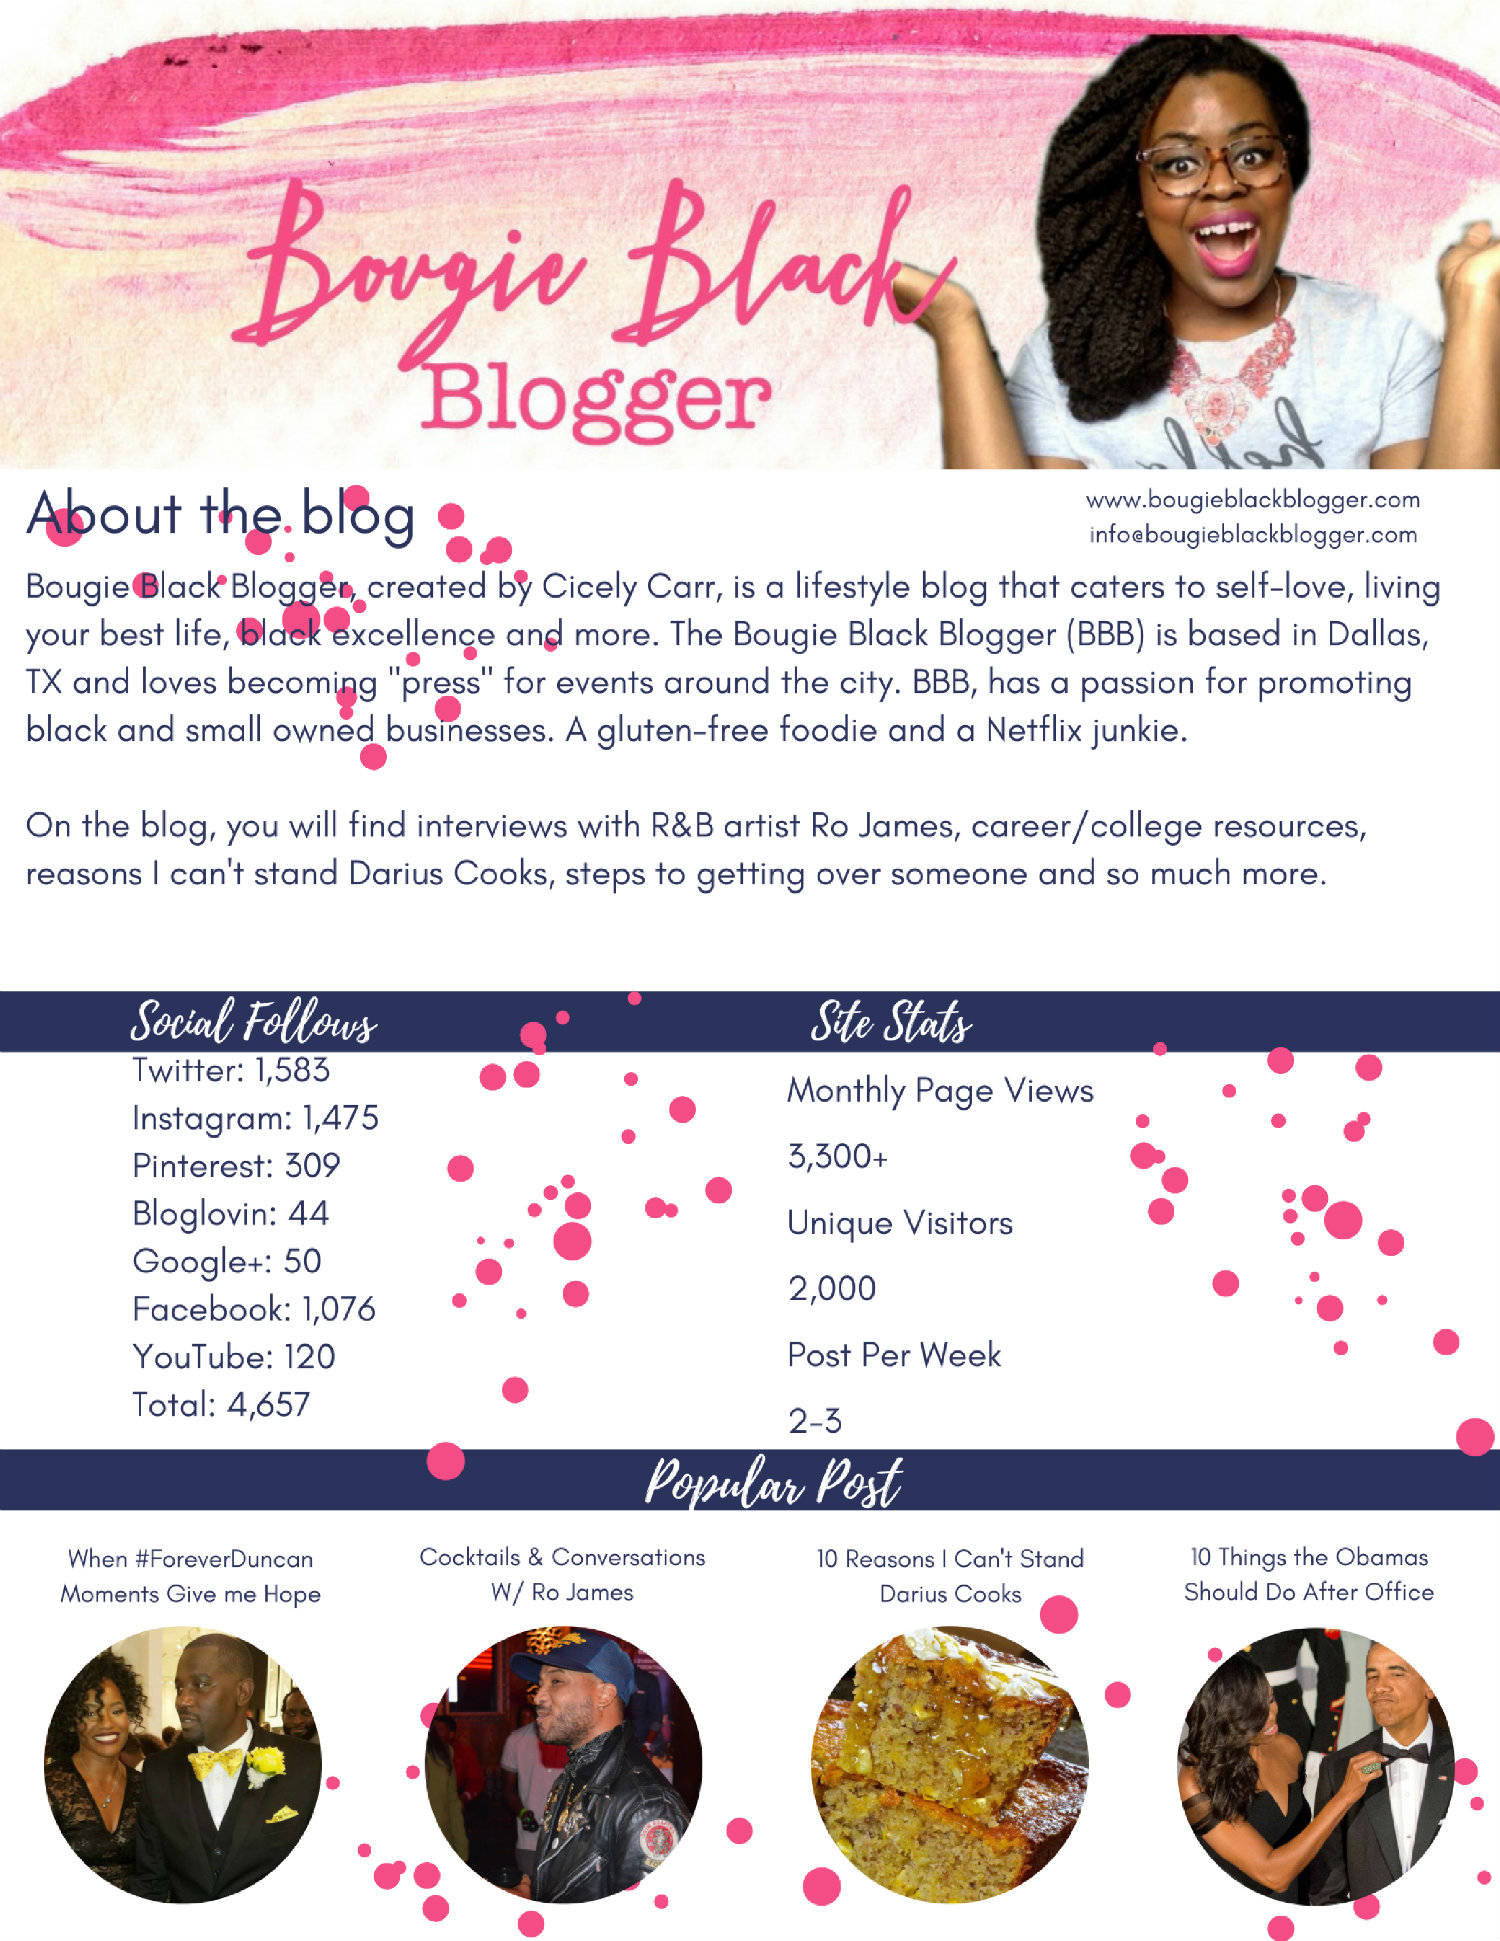 Bougie Black Blogger: Media Kit